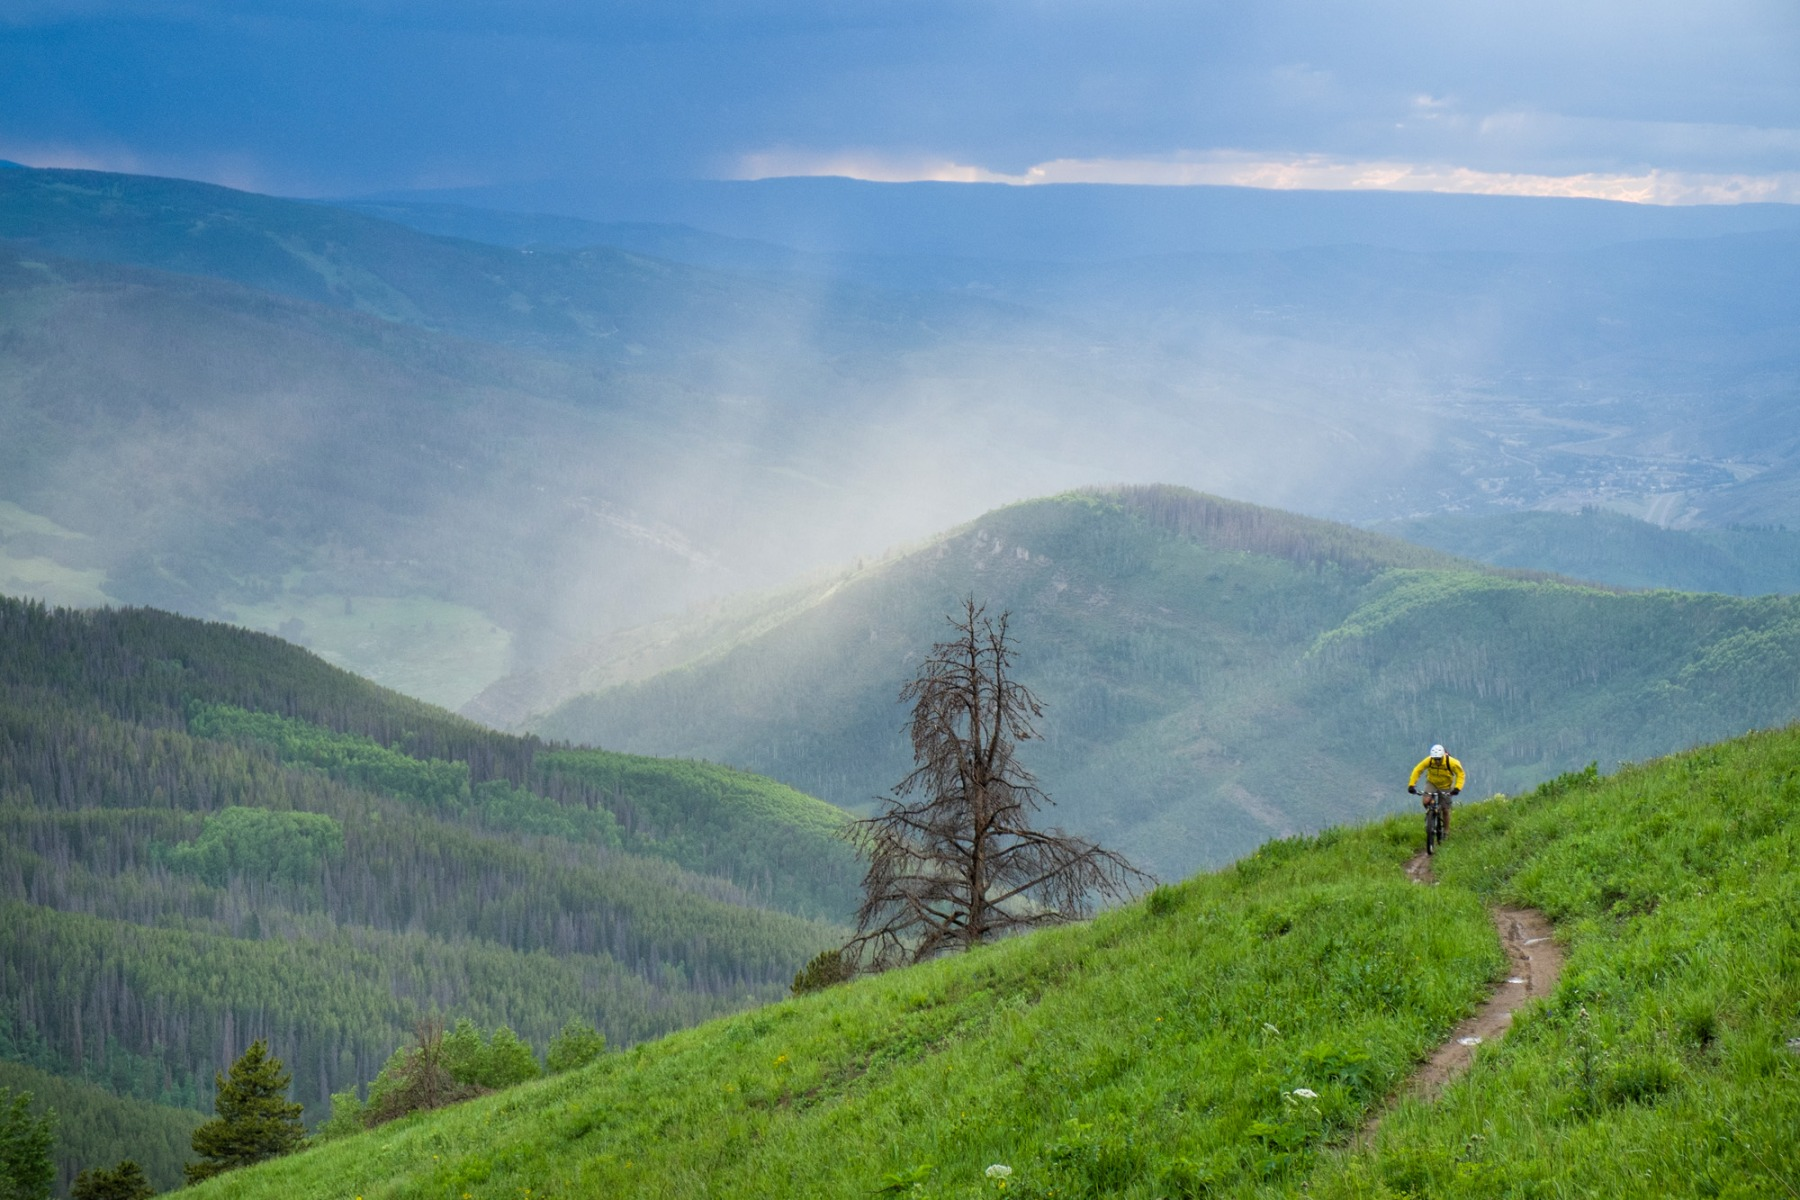 Mountain Biking in Vail Colorado